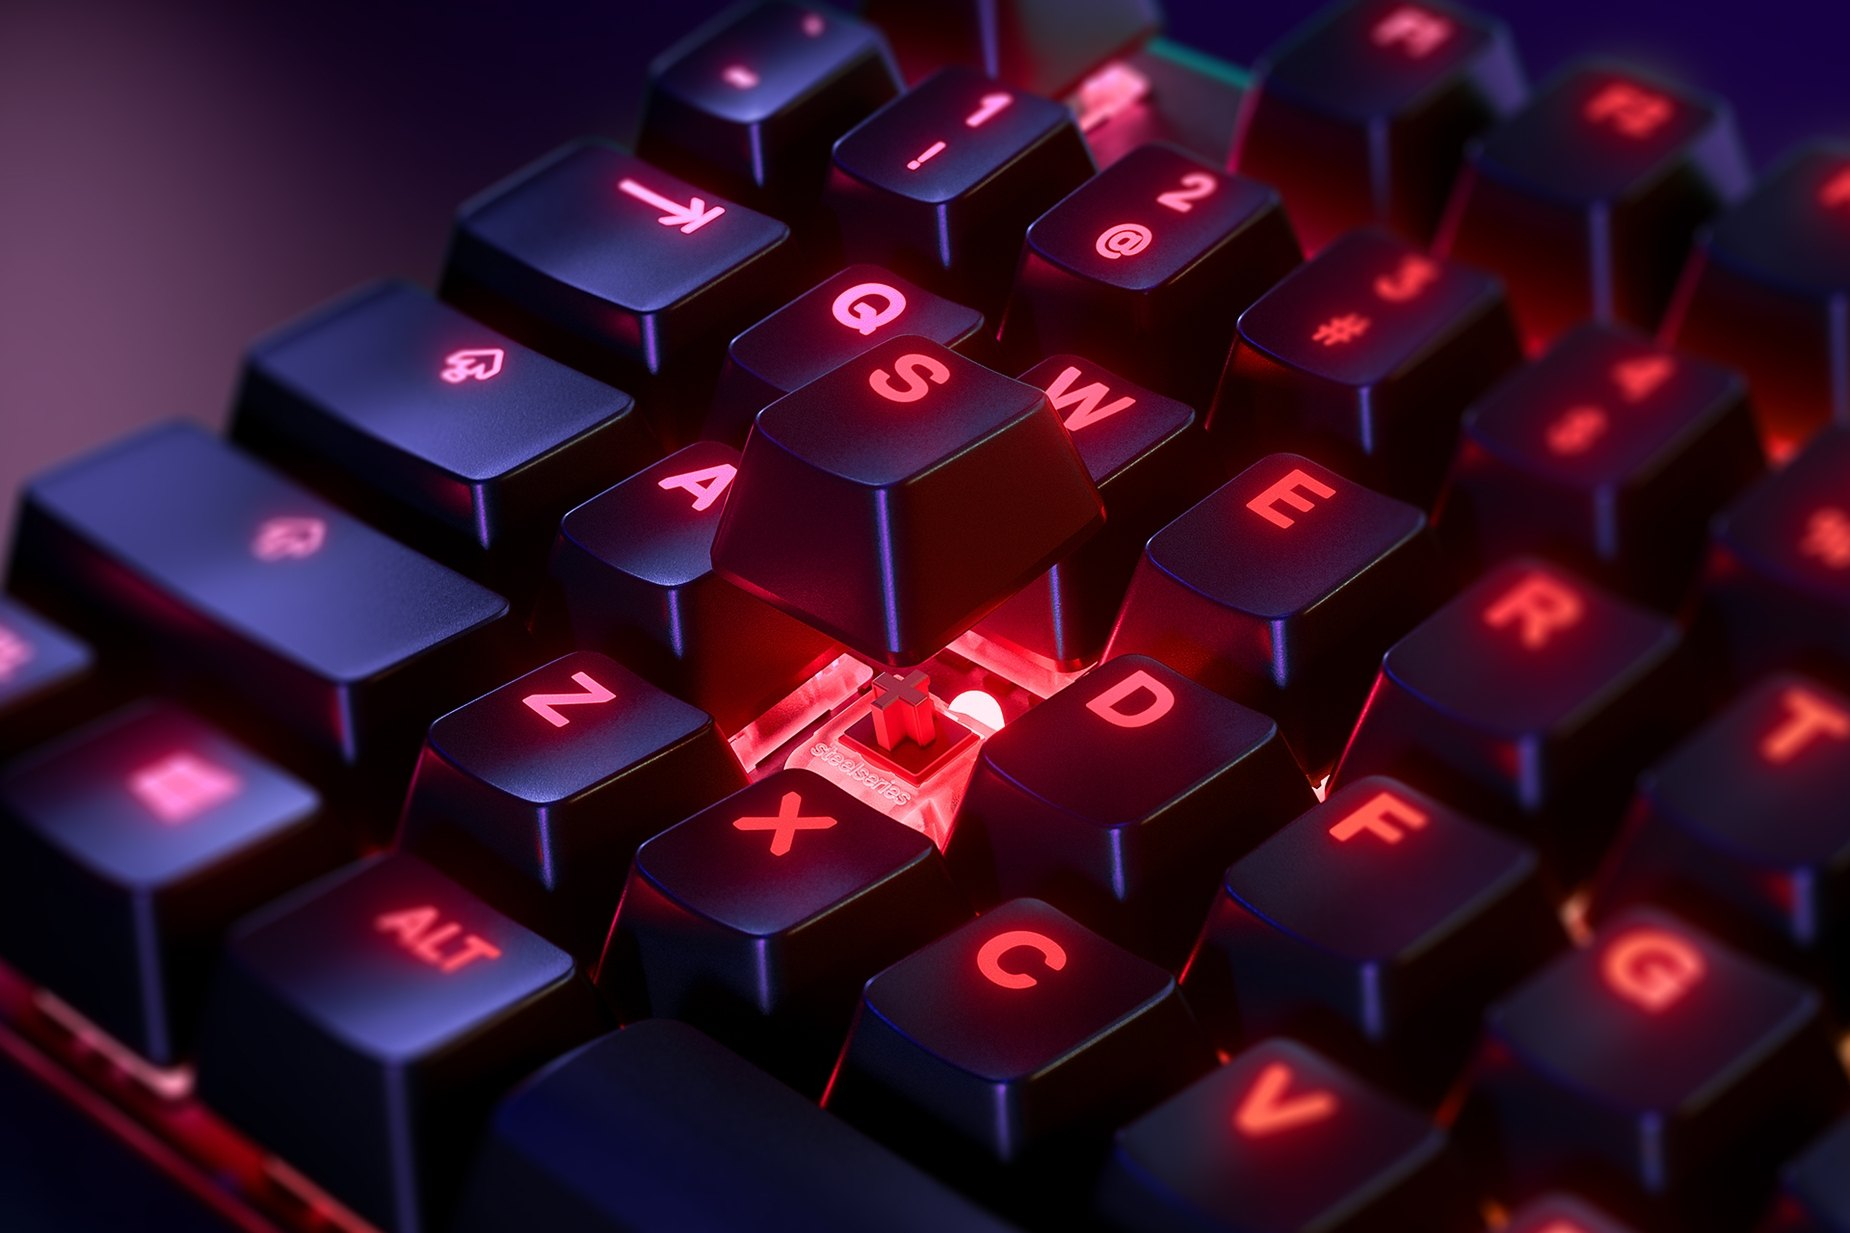 Zoomed in view of a single key on the French - Apex 7 (Red Switch) gaming keyboard, the key is raised up to show the SteelSeries QX2 Mechanical RGB Switch underneath